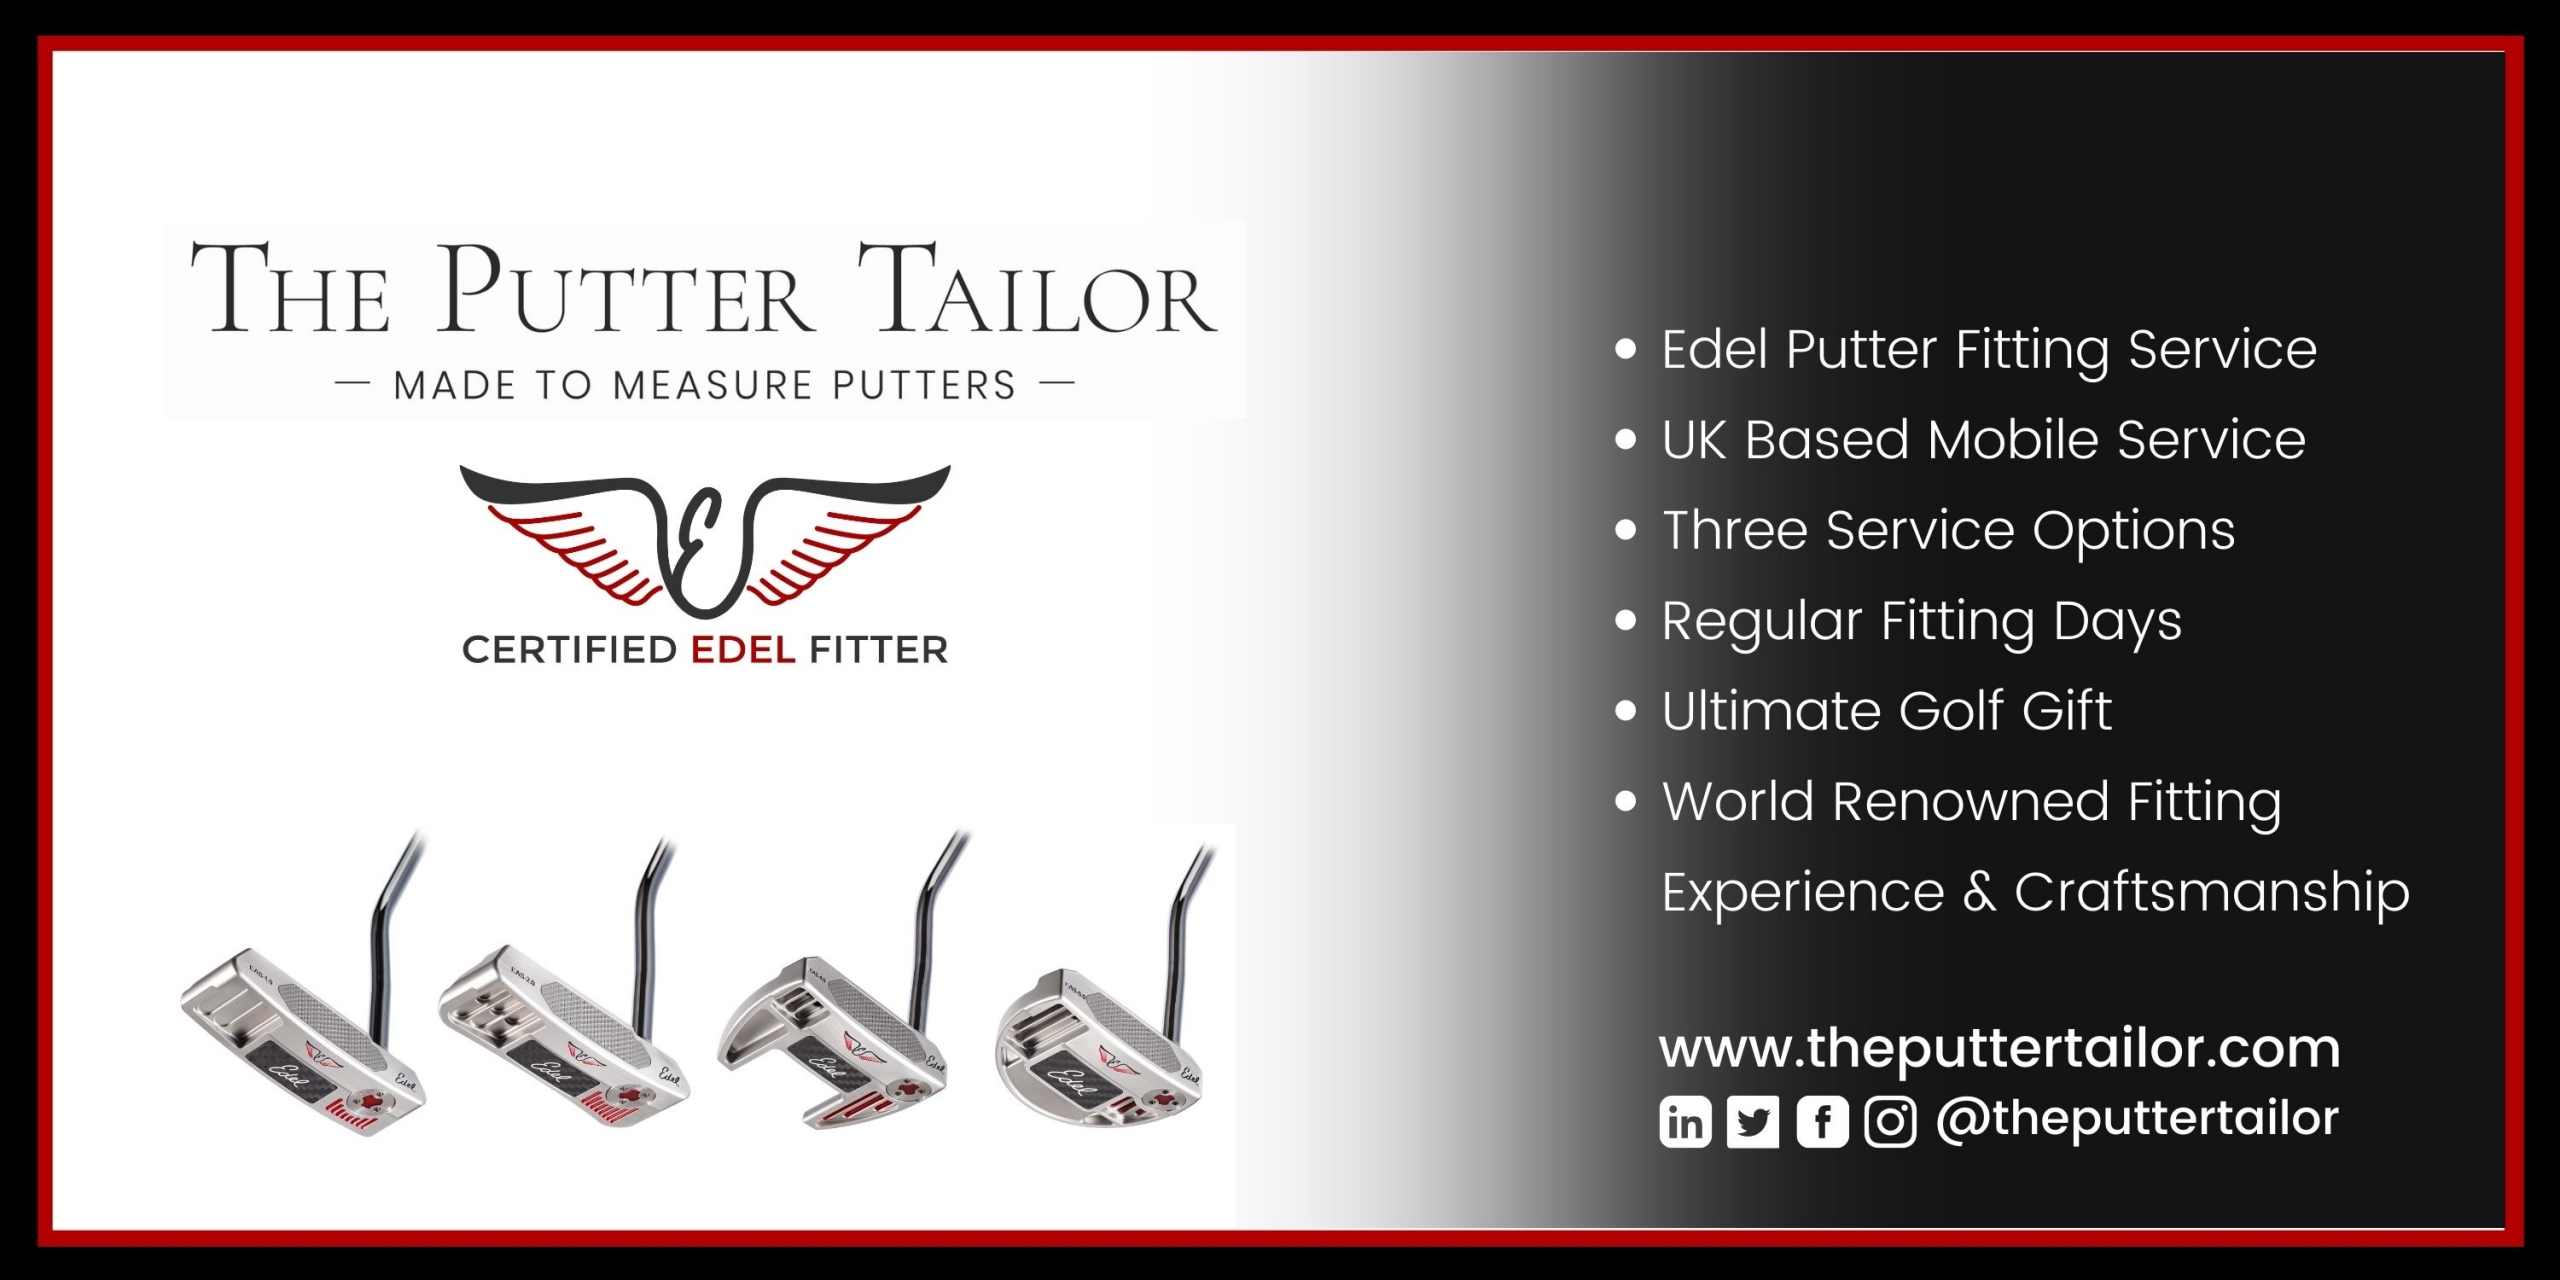 The Putter Tailor provides Custom Fit Putters & Technology using both Edel and BioMech